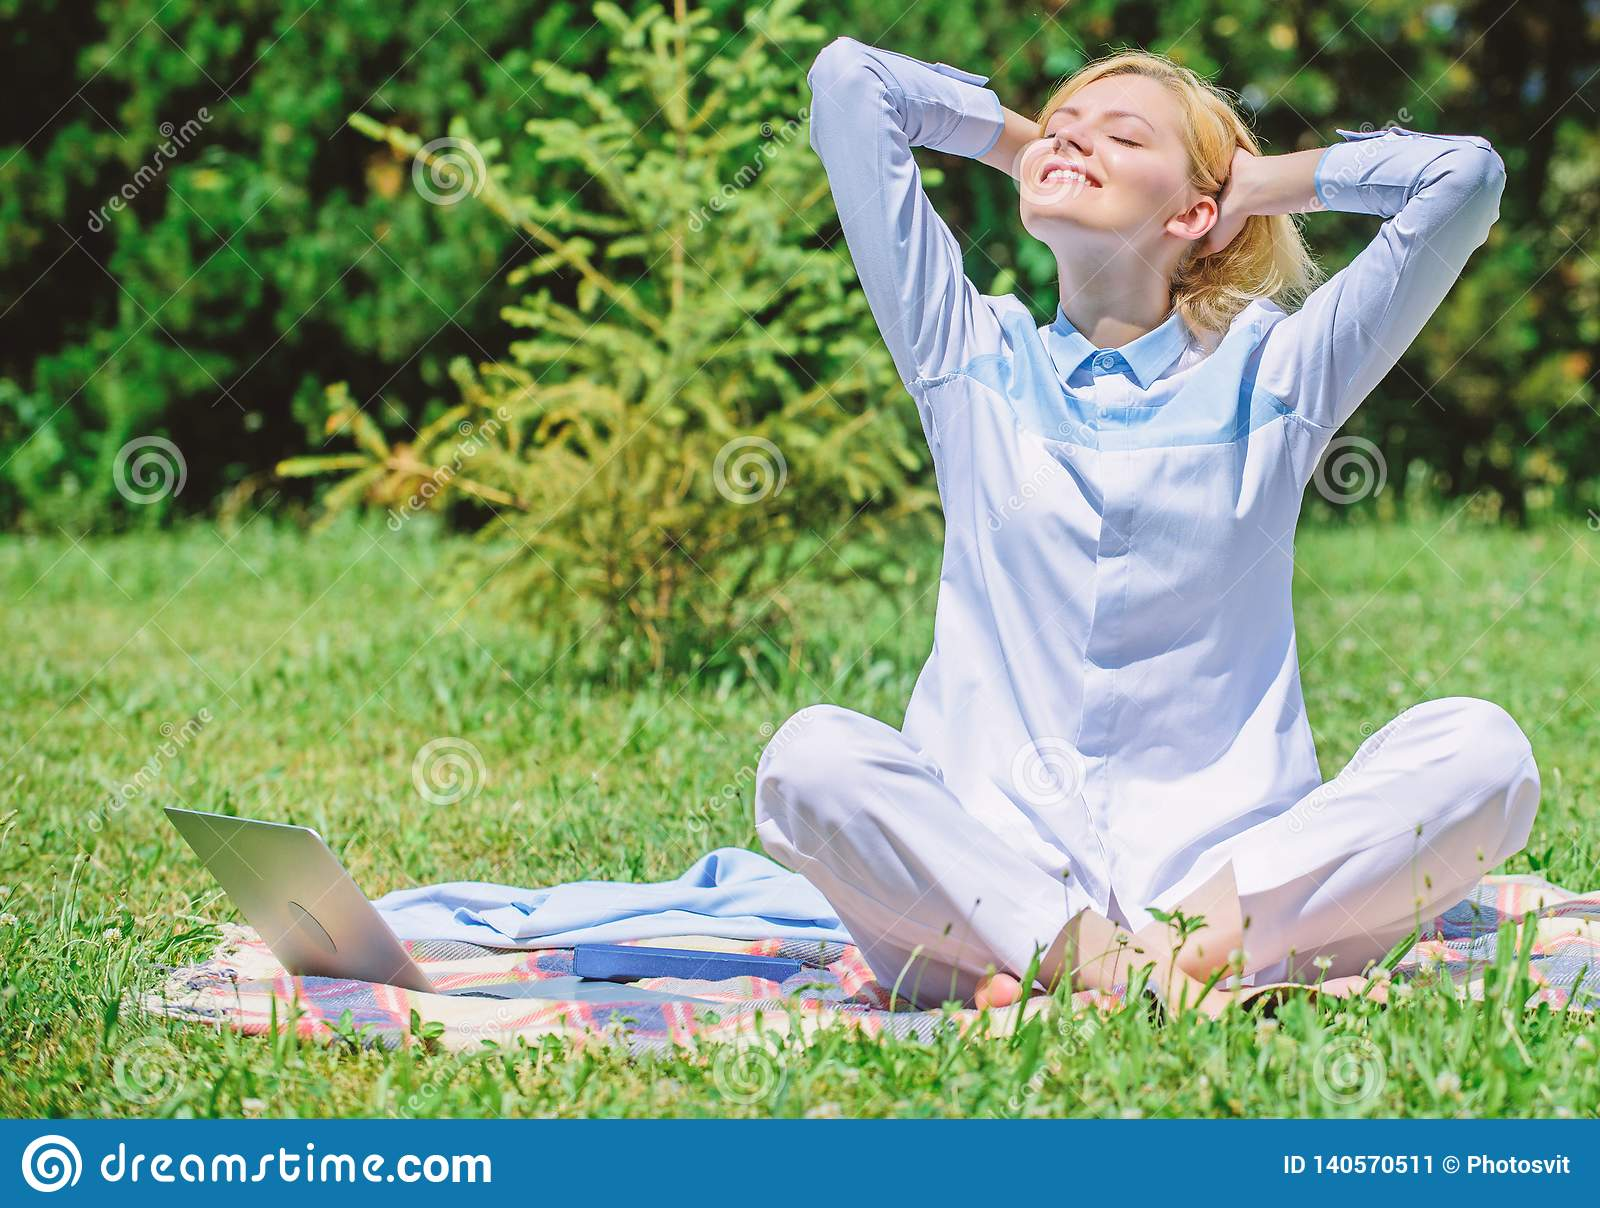 Clear your mind. Girl meditate on rug green grass meadow nature background. Find minute to relax. Woman relaxing